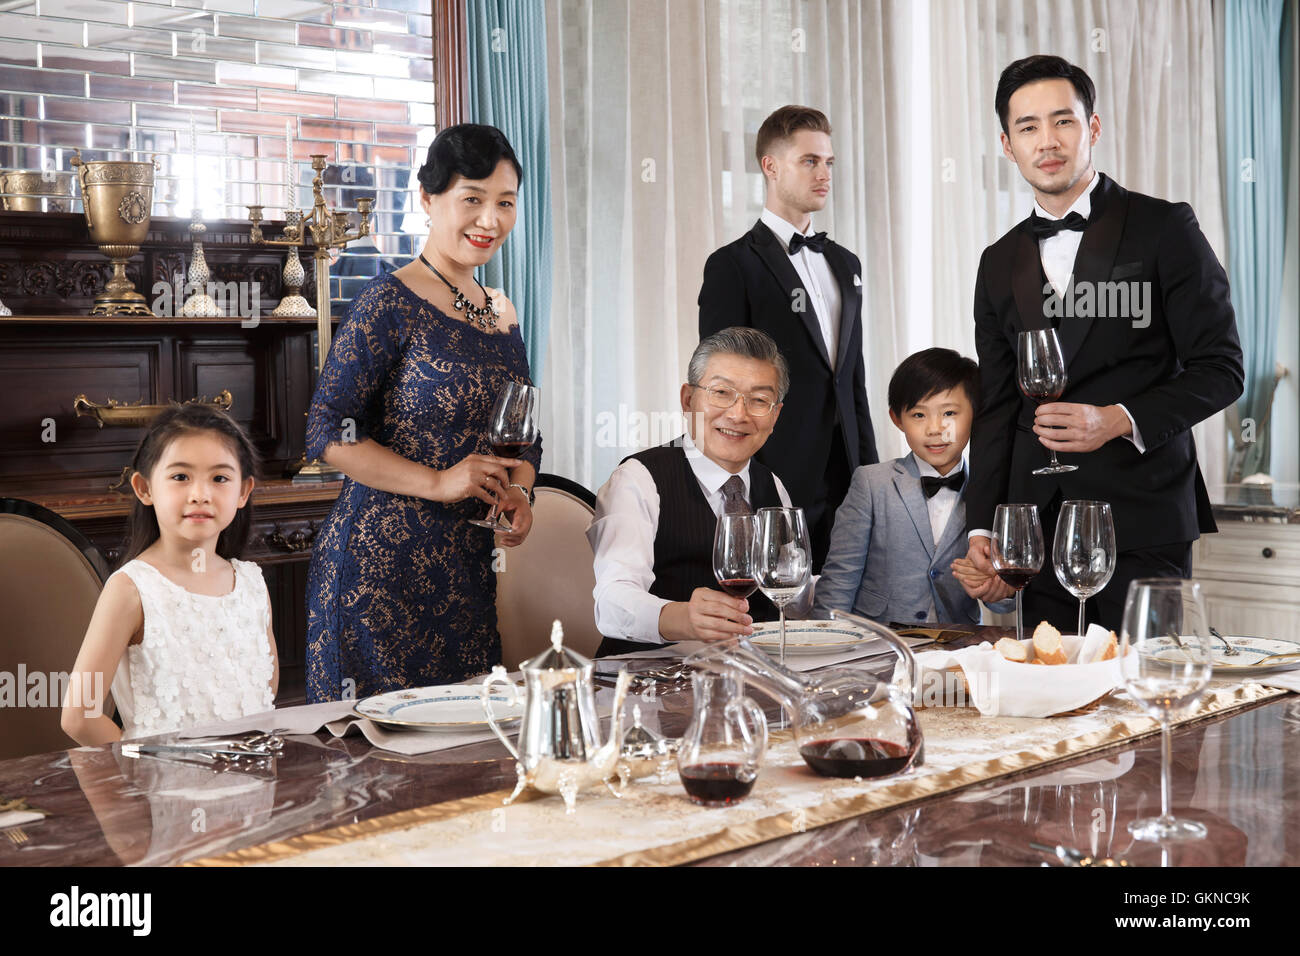 Aristocratic family dinner - Stock Image